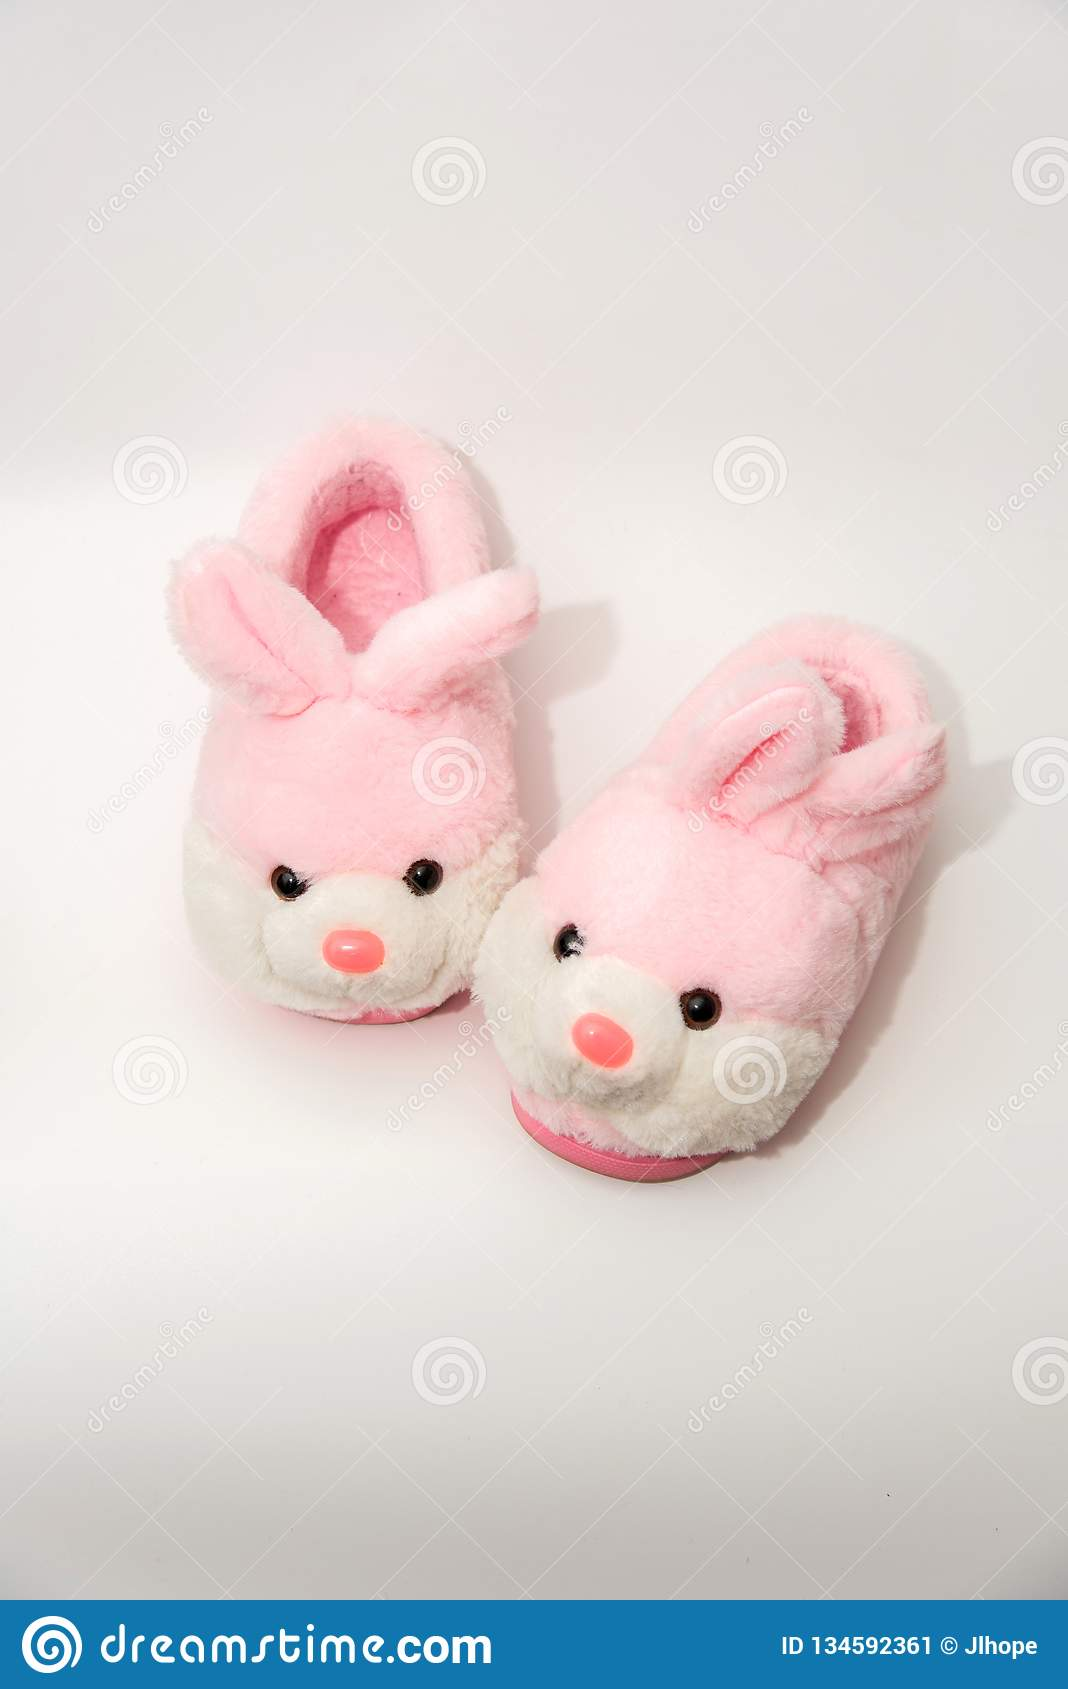 aa197223791c Cute pink and white rabbit shaped cotton-padded shoes isolated on white  background